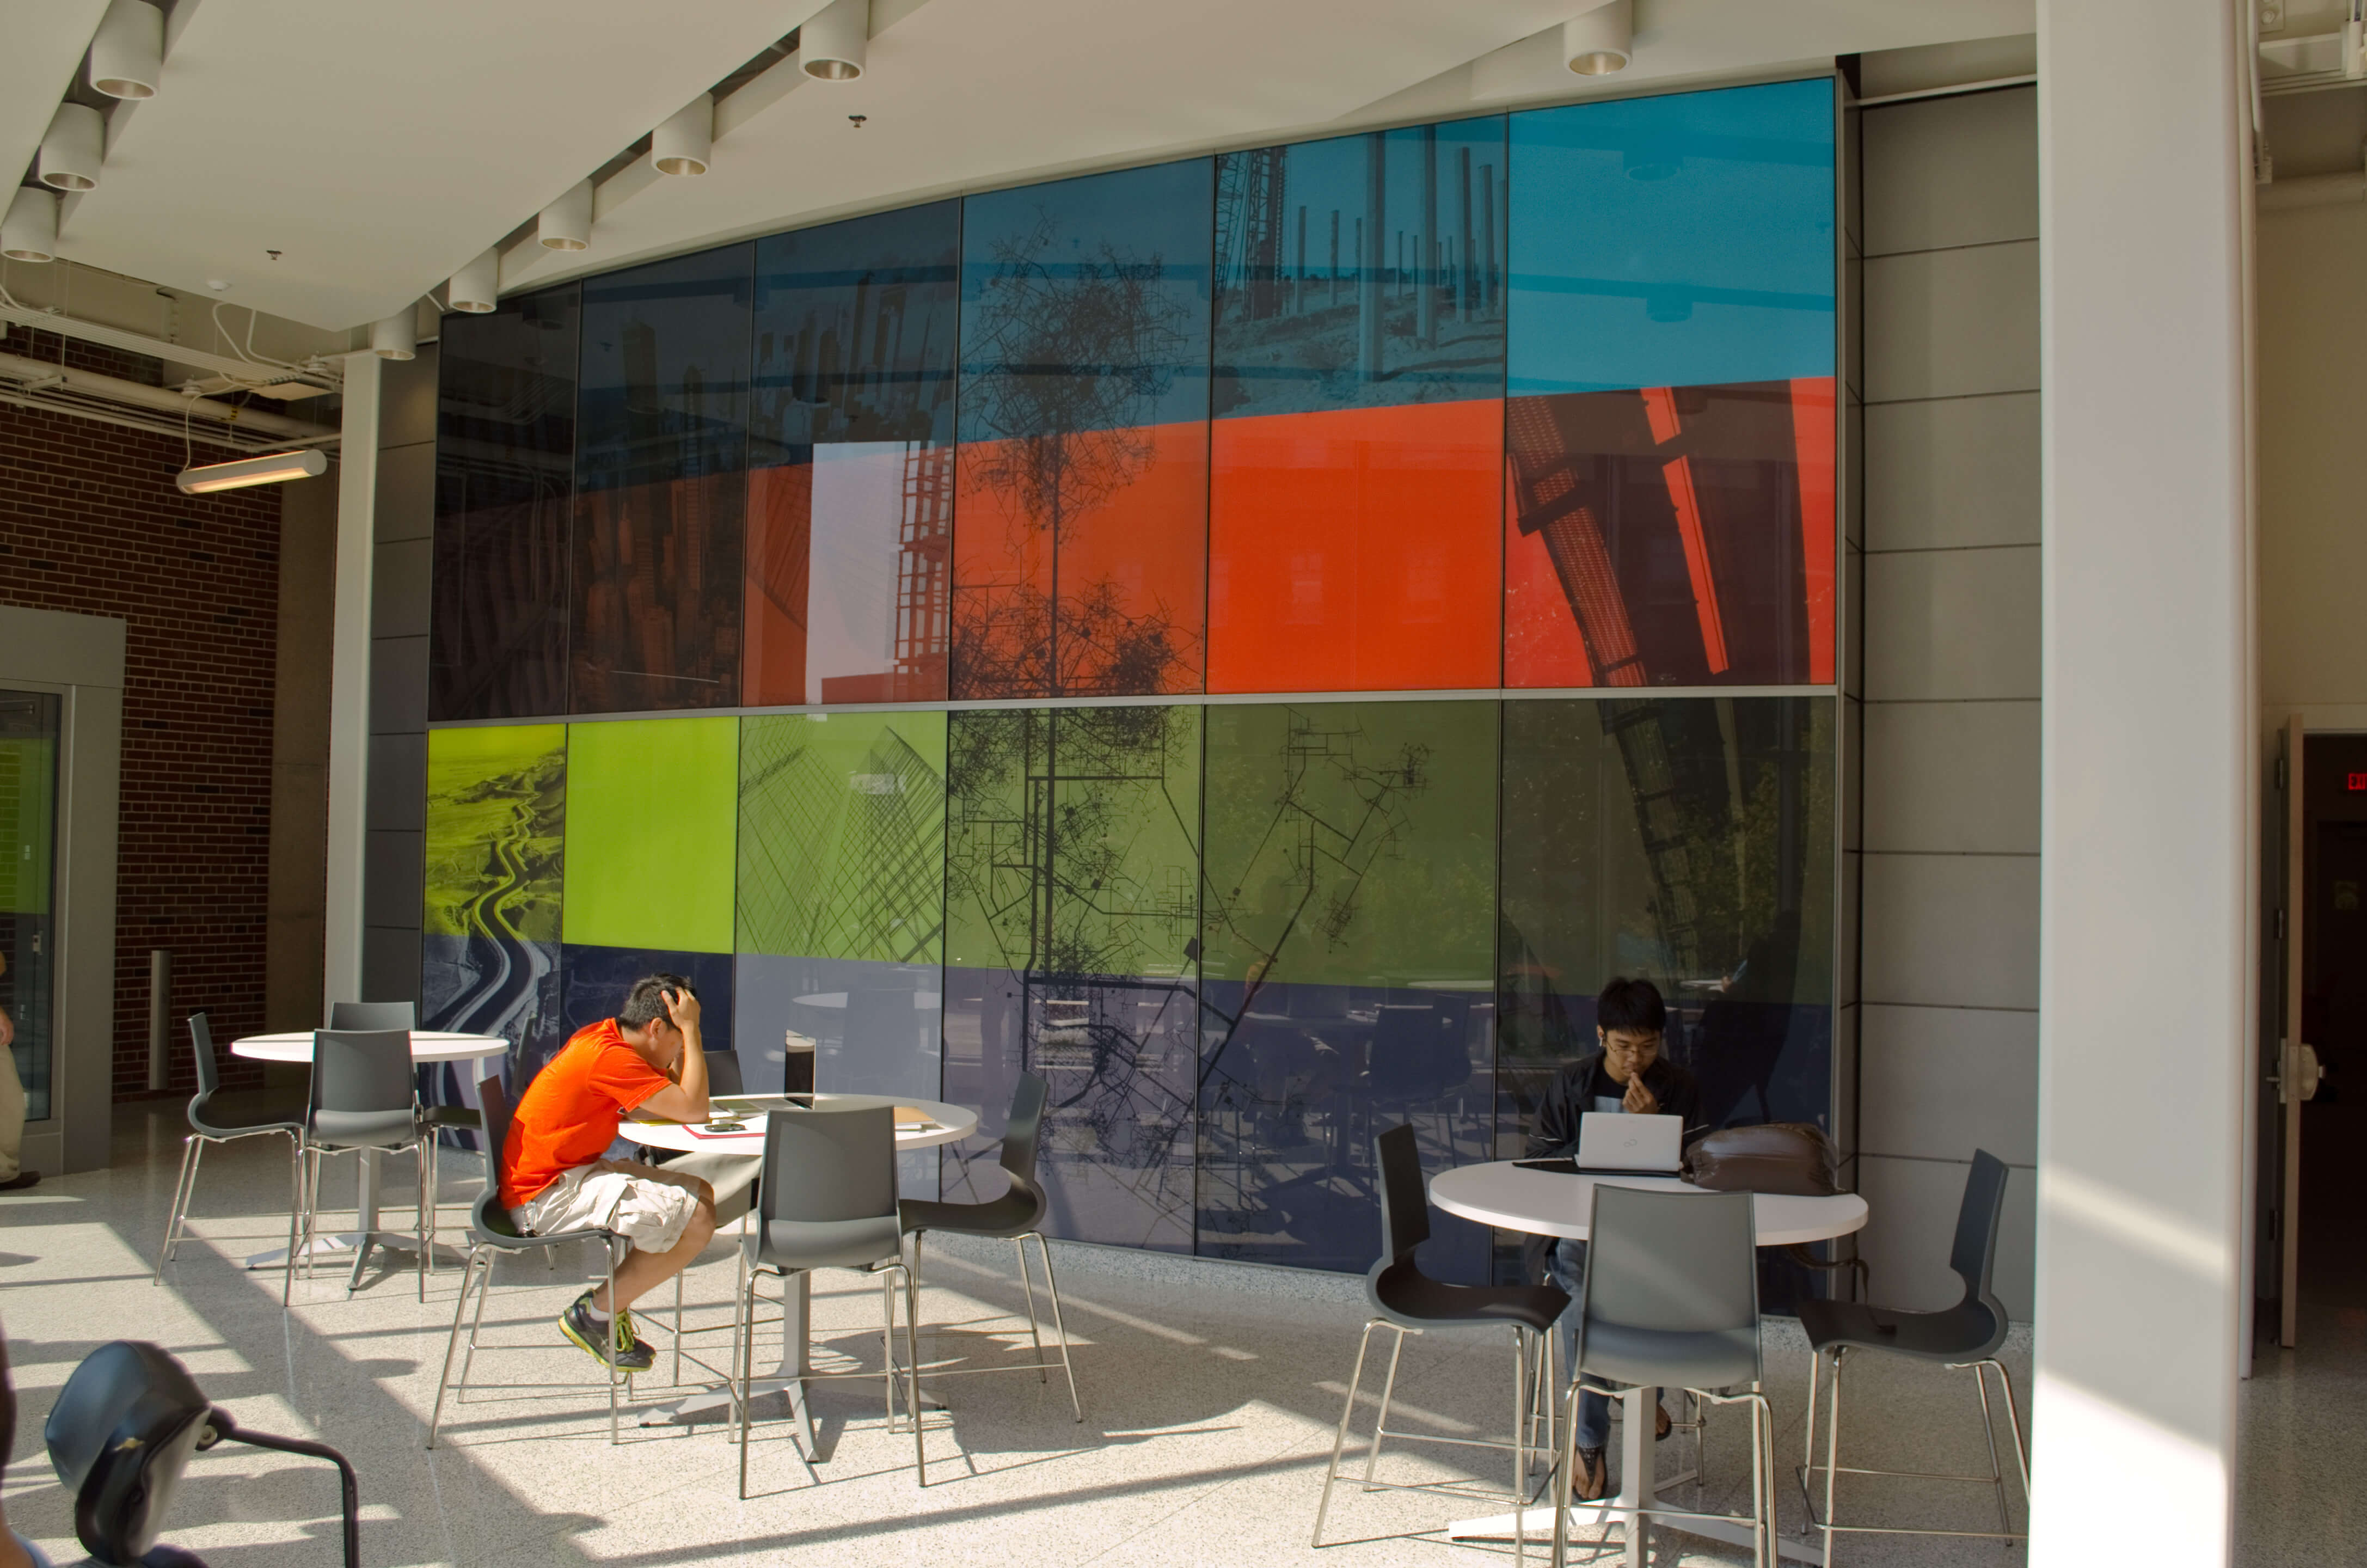 University of Illinois at Urbana-Champaign | College of Environmental and Civil Engineering | Yeh Center Glass Wall Feature